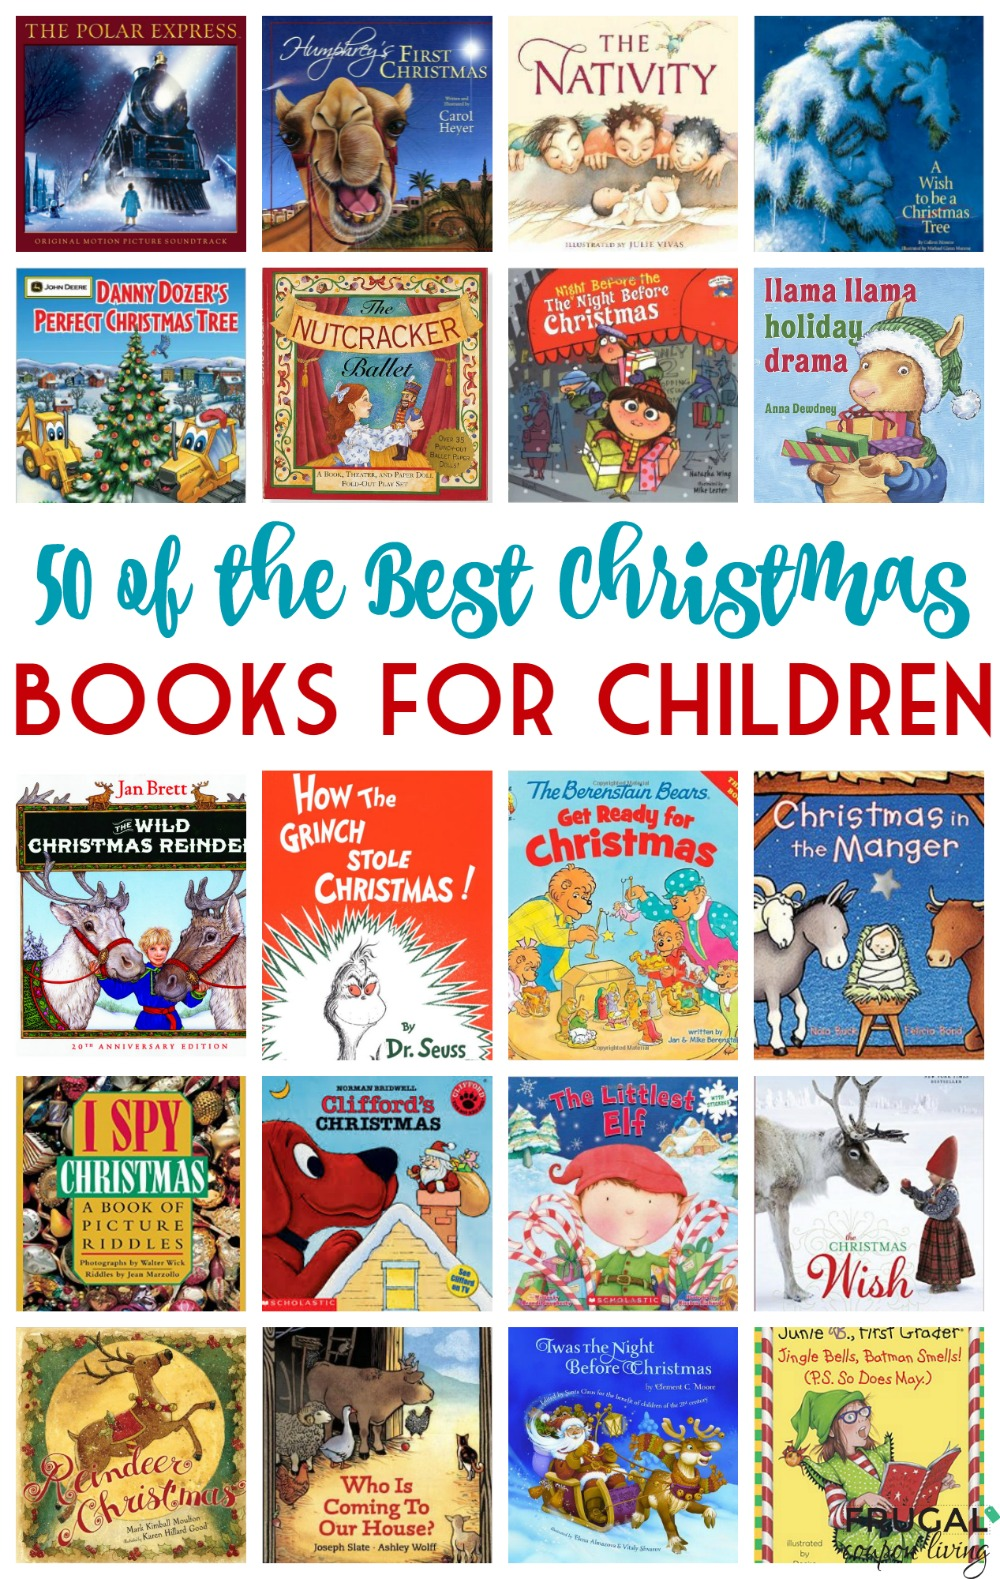 50 best childrens books frugal coupon living - Best Christmas Books